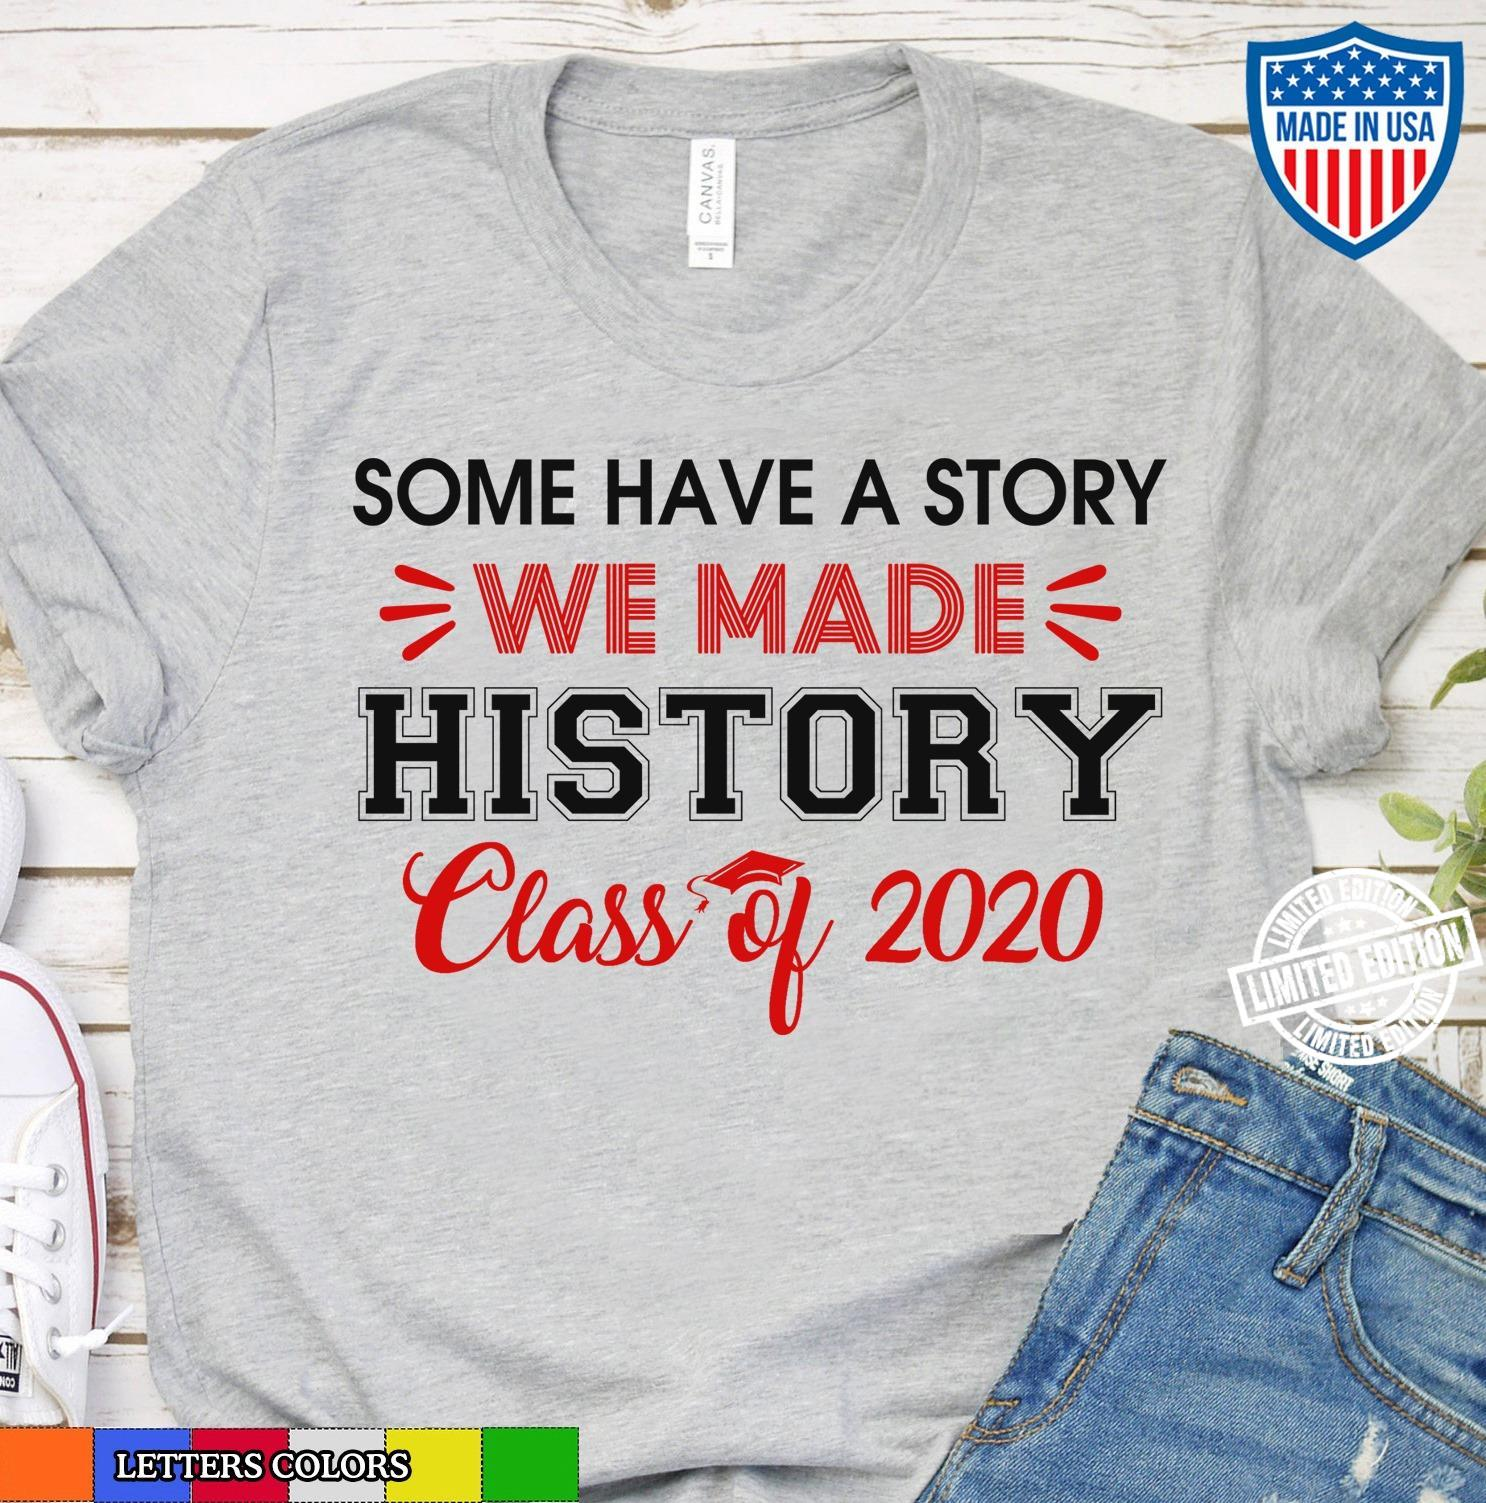 Some have a story we made history class of 2020 t shirt